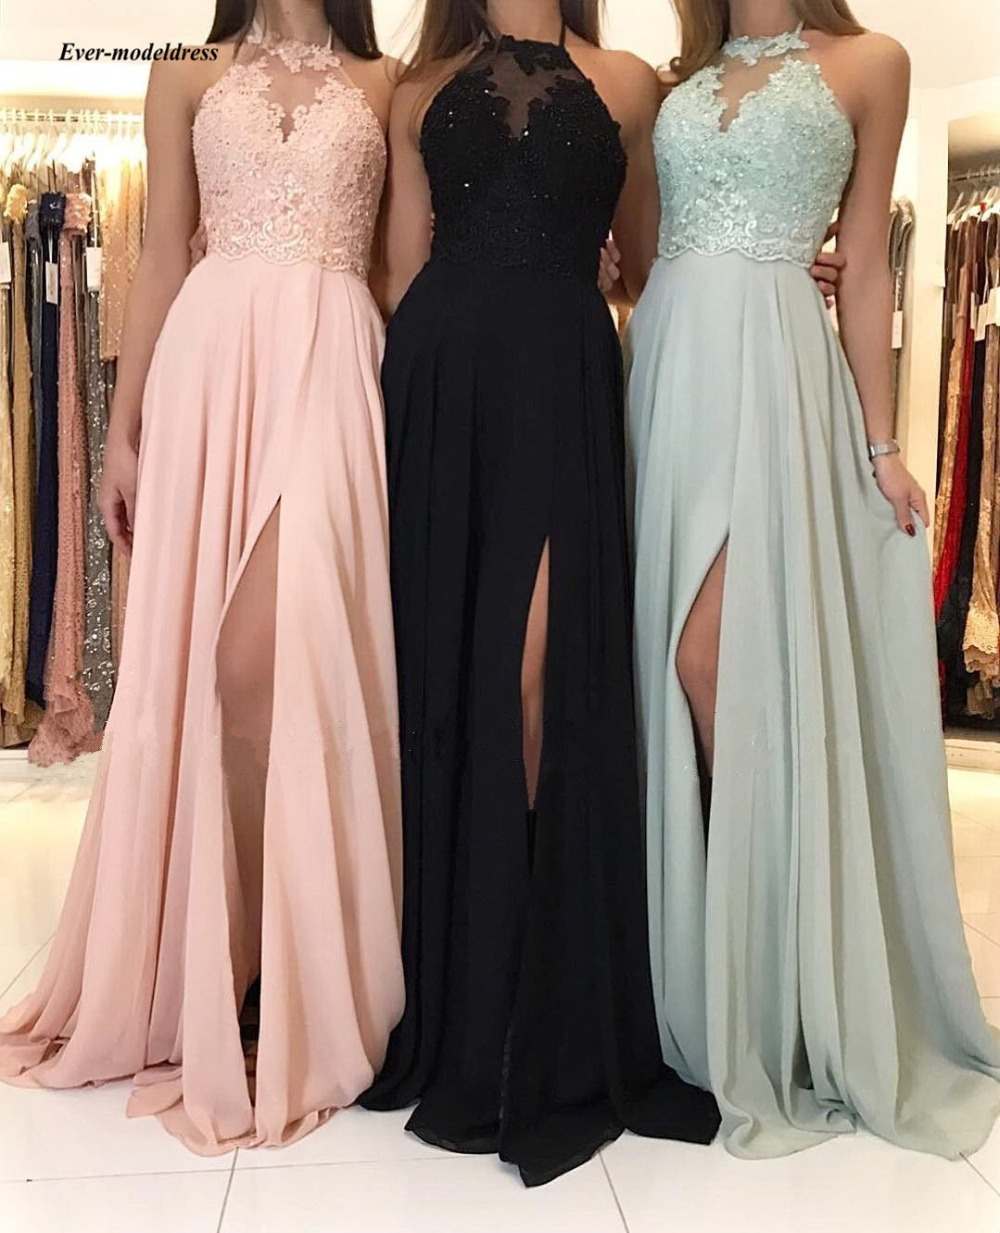 2020 Chiffon <font><b>Bridesmaid</b></font> <font><b>Dresses</b></font> Long <font><b>Sexy</b></font> Side Split Halter Neck Lace Appliques Beaded Simple Wedding Guest Party Gowns Cheap image